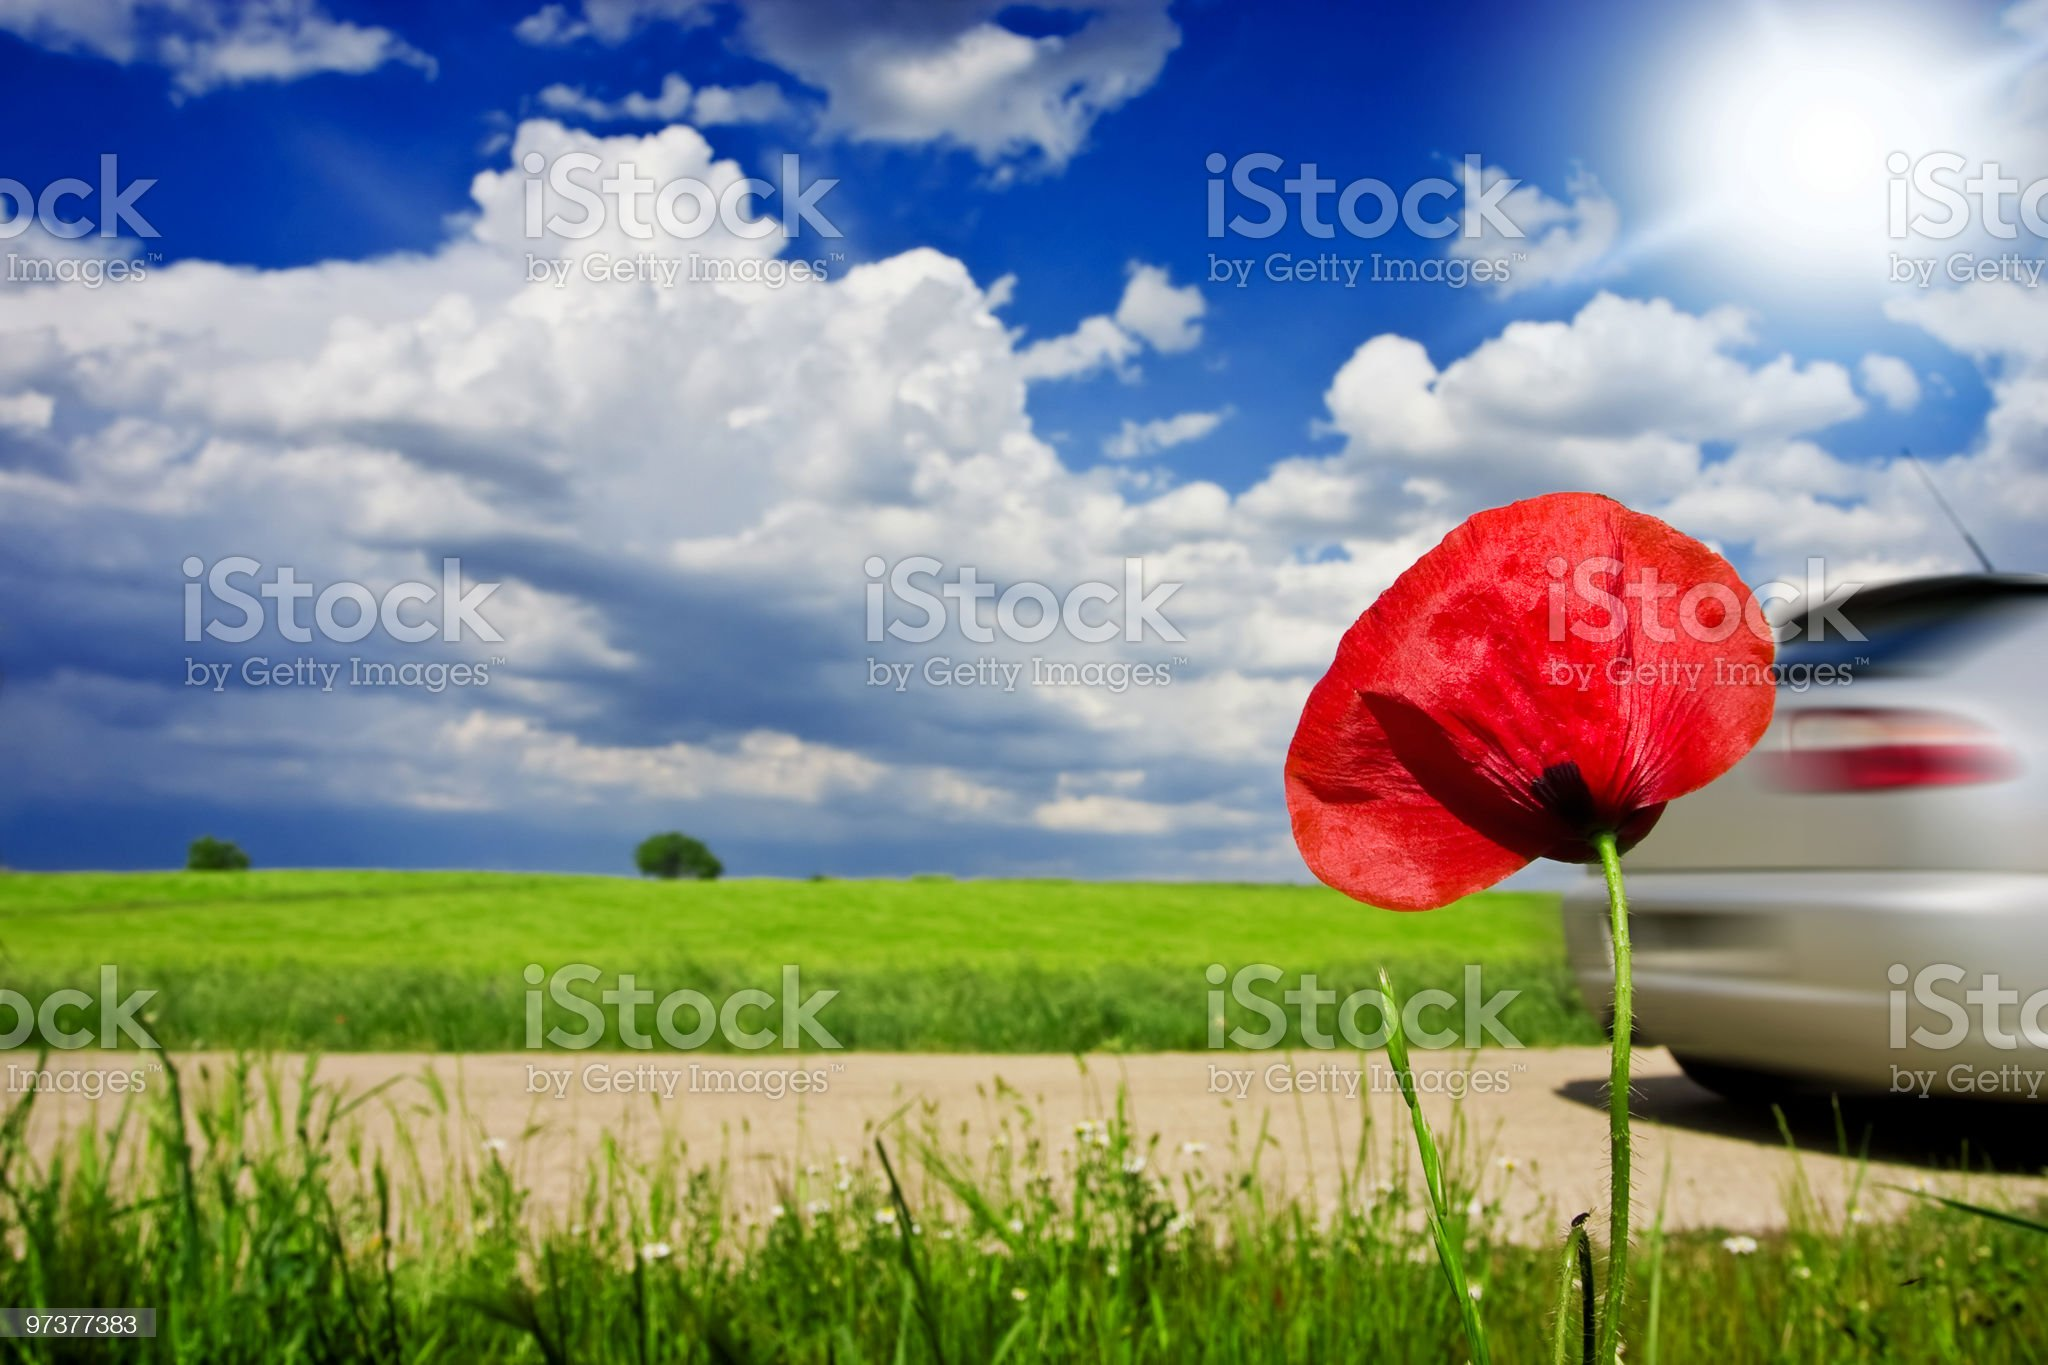 Poppy red flower with fast car passing by on background royalty-free stock photo